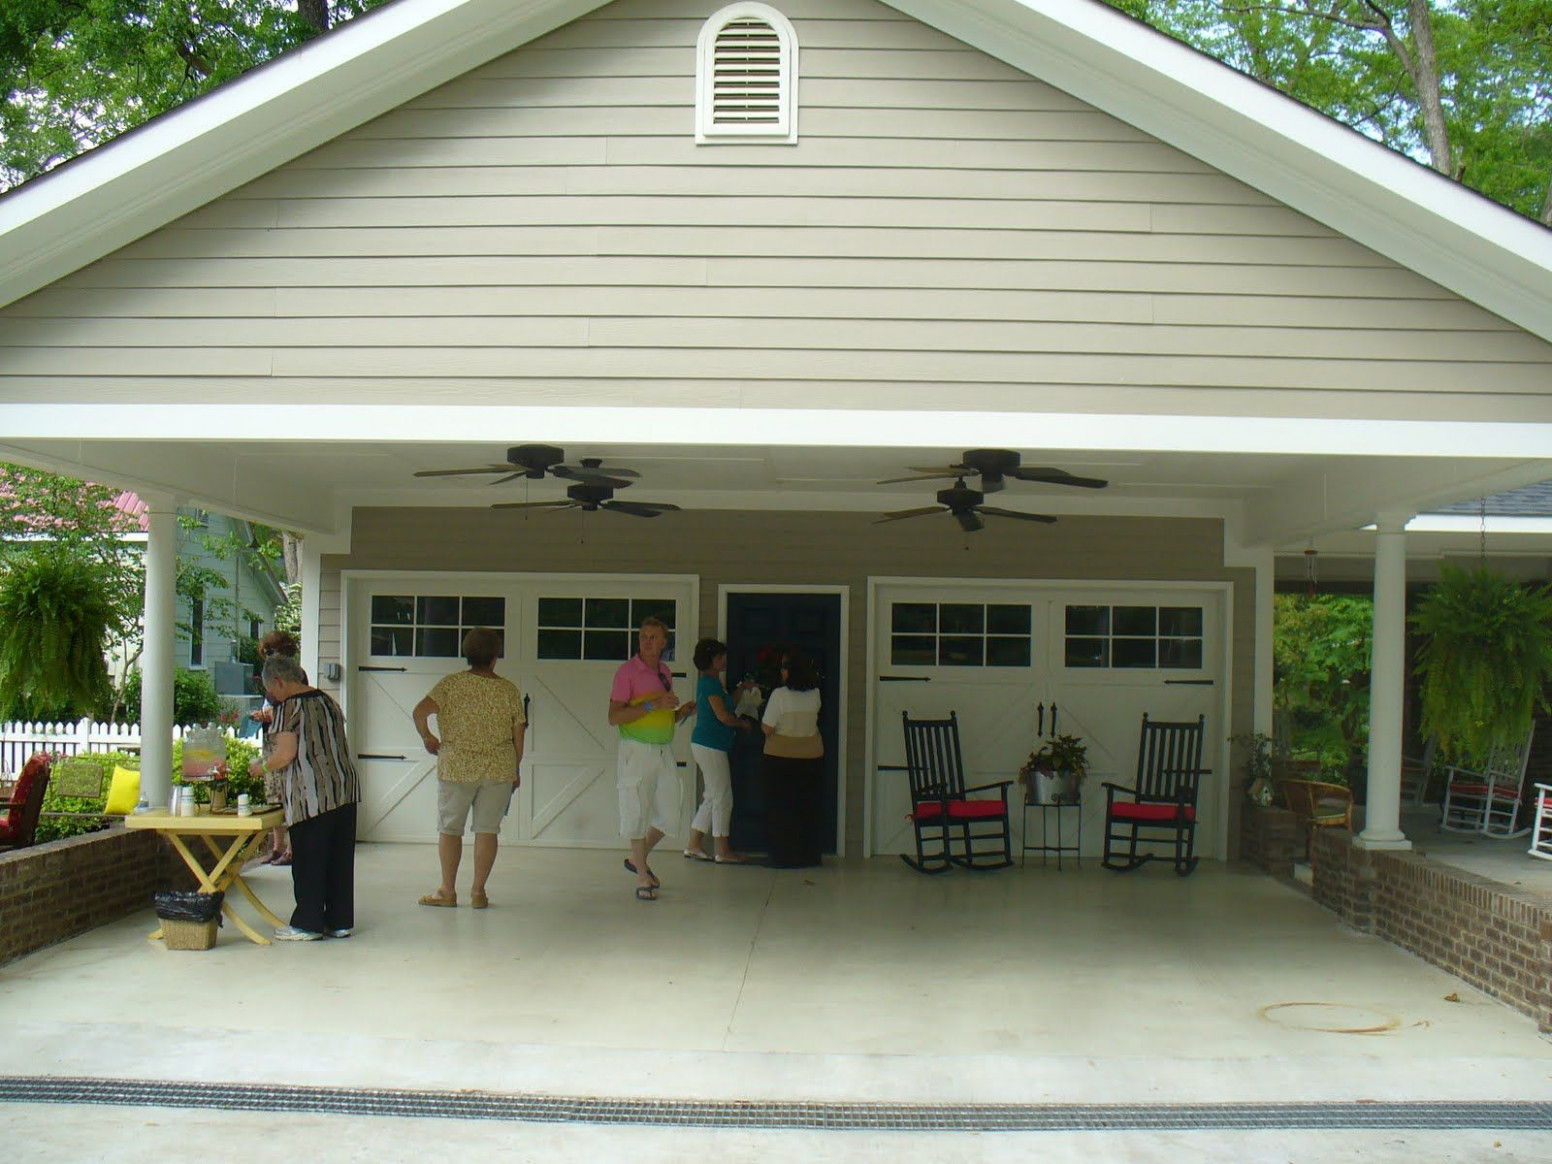 Building A Carport Patio | Notice The Ceiling Fans. Isn't ..